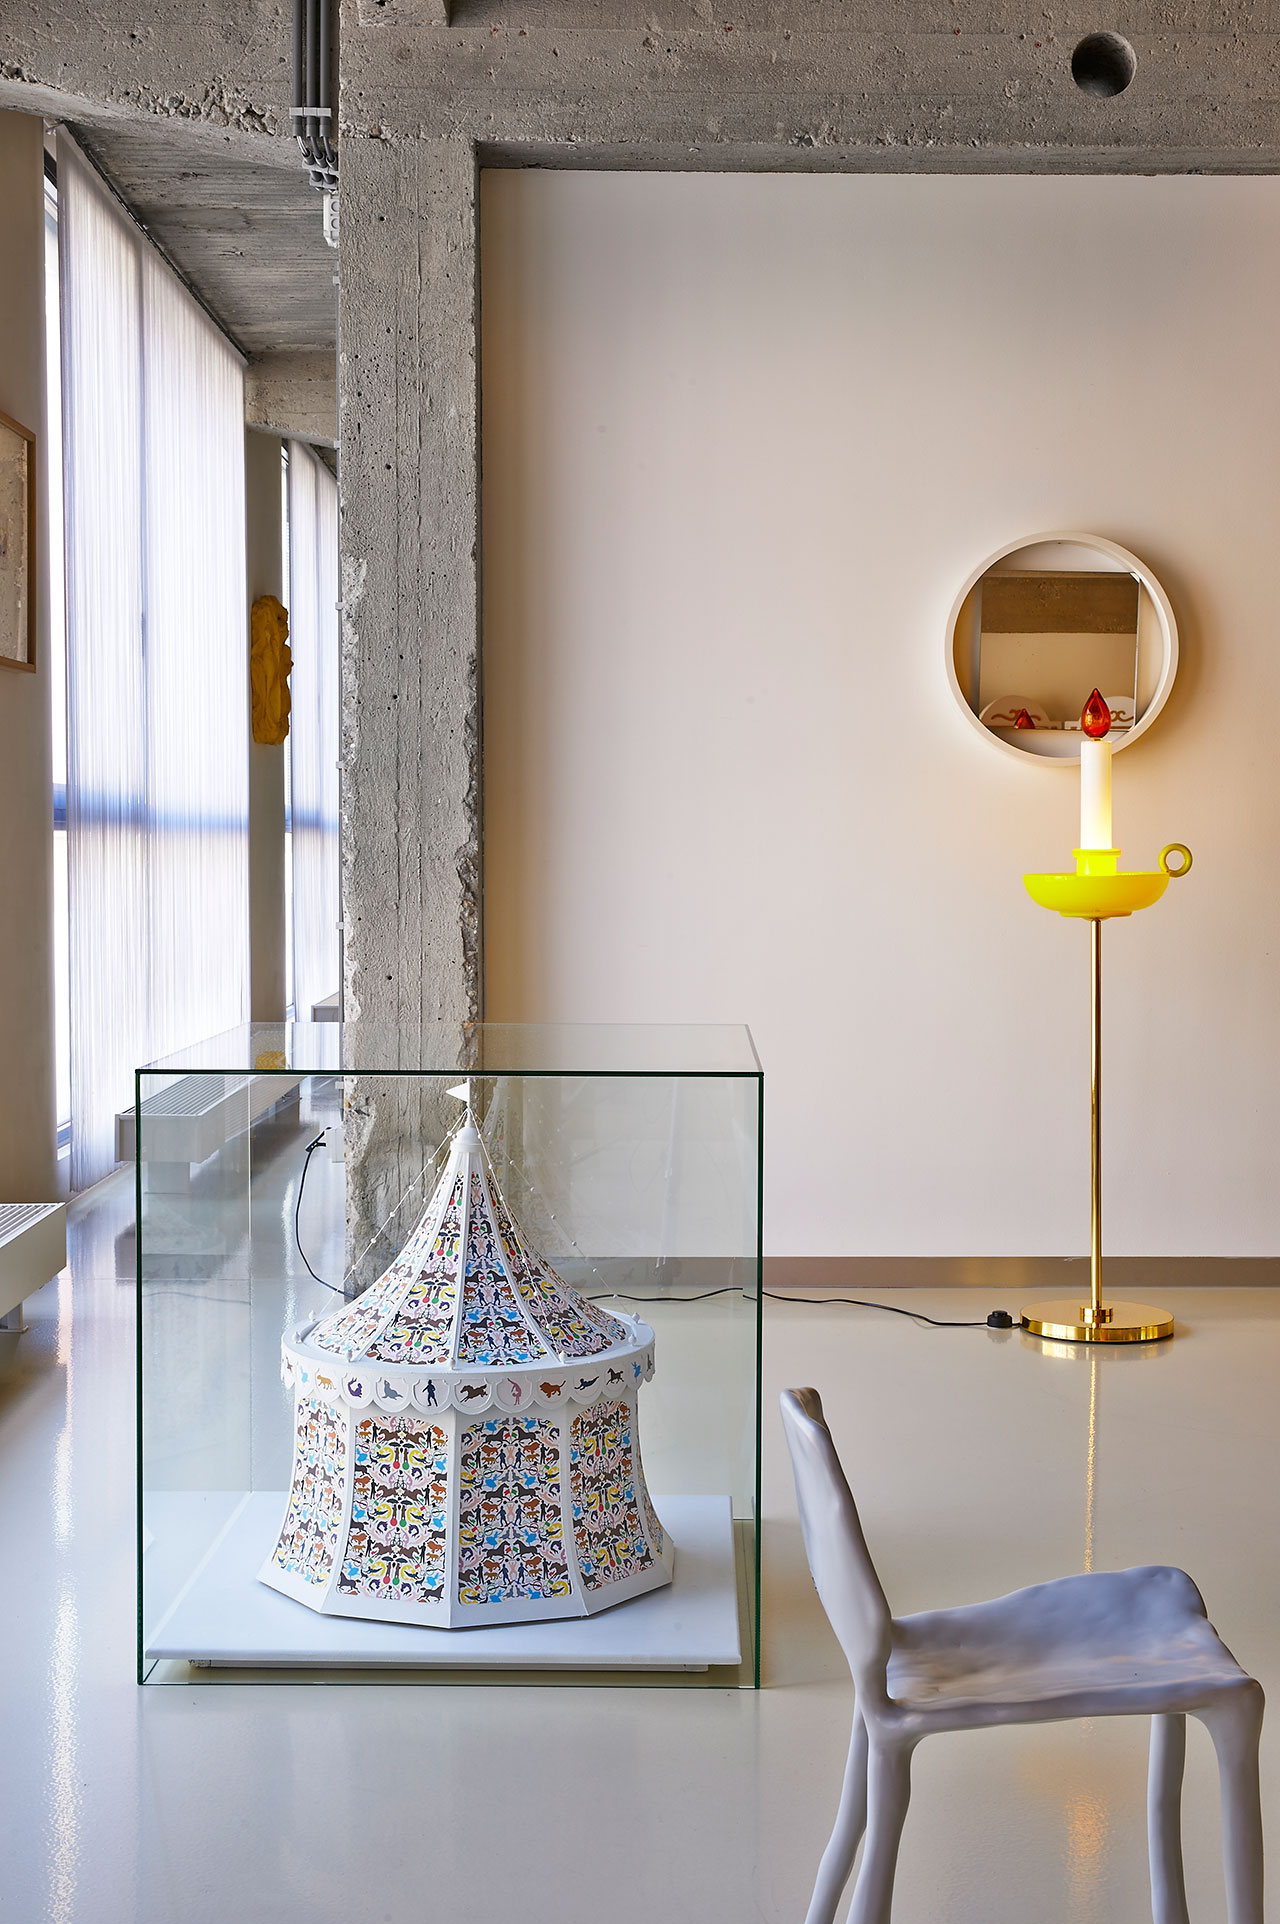 Office. Circus, Studio Job. Sconce, Studio Job for Venini. Mirror, Benno Premsela. Children's Clay Chair, Maarten Baas. Photo by Dennis Brandsma.